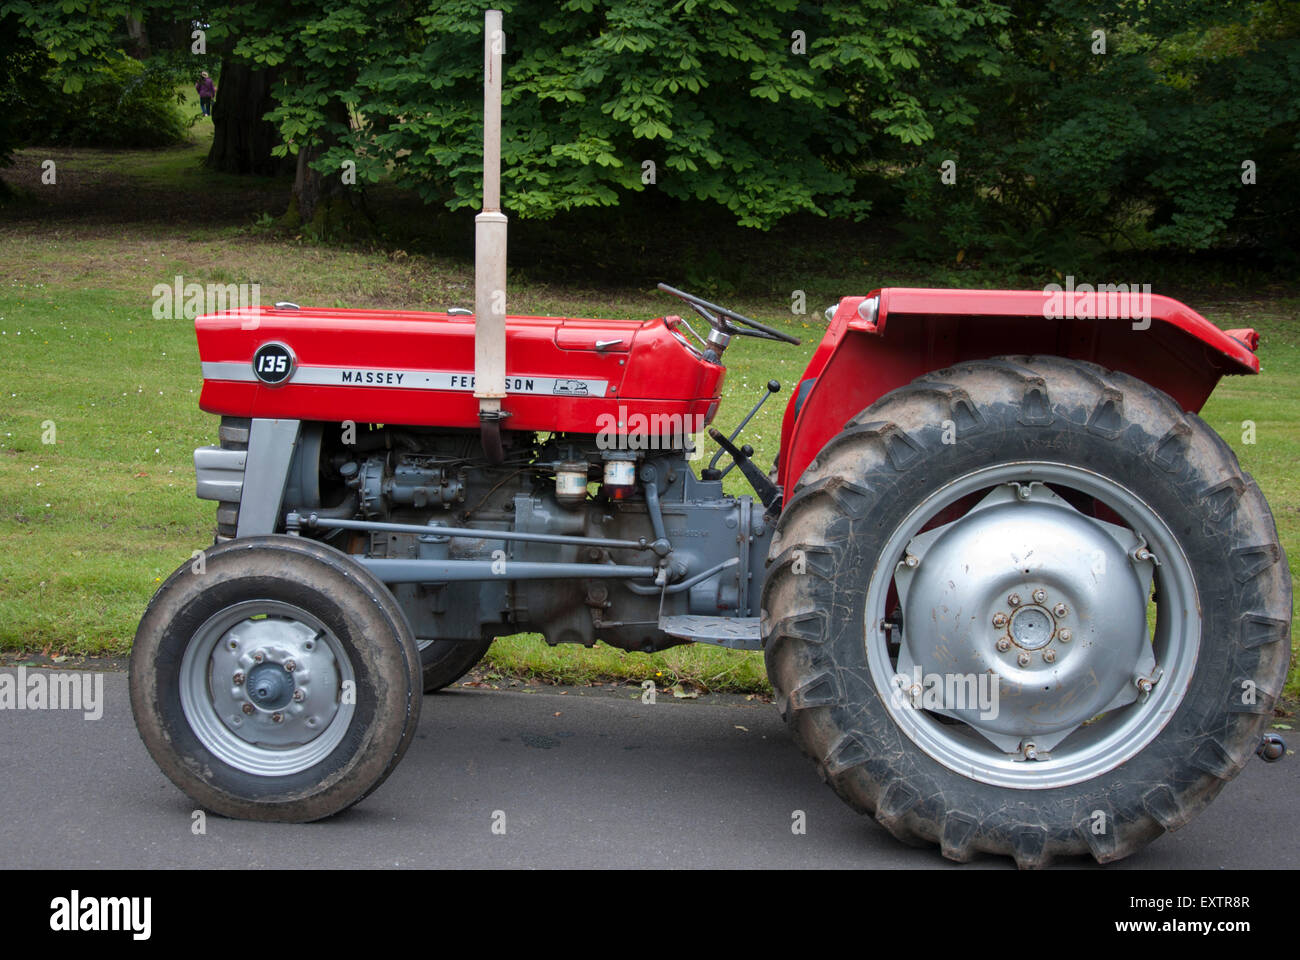 1960 39 s red grey massey ferguson 135 series tractor stock. Black Bedroom Furniture Sets. Home Design Ideas